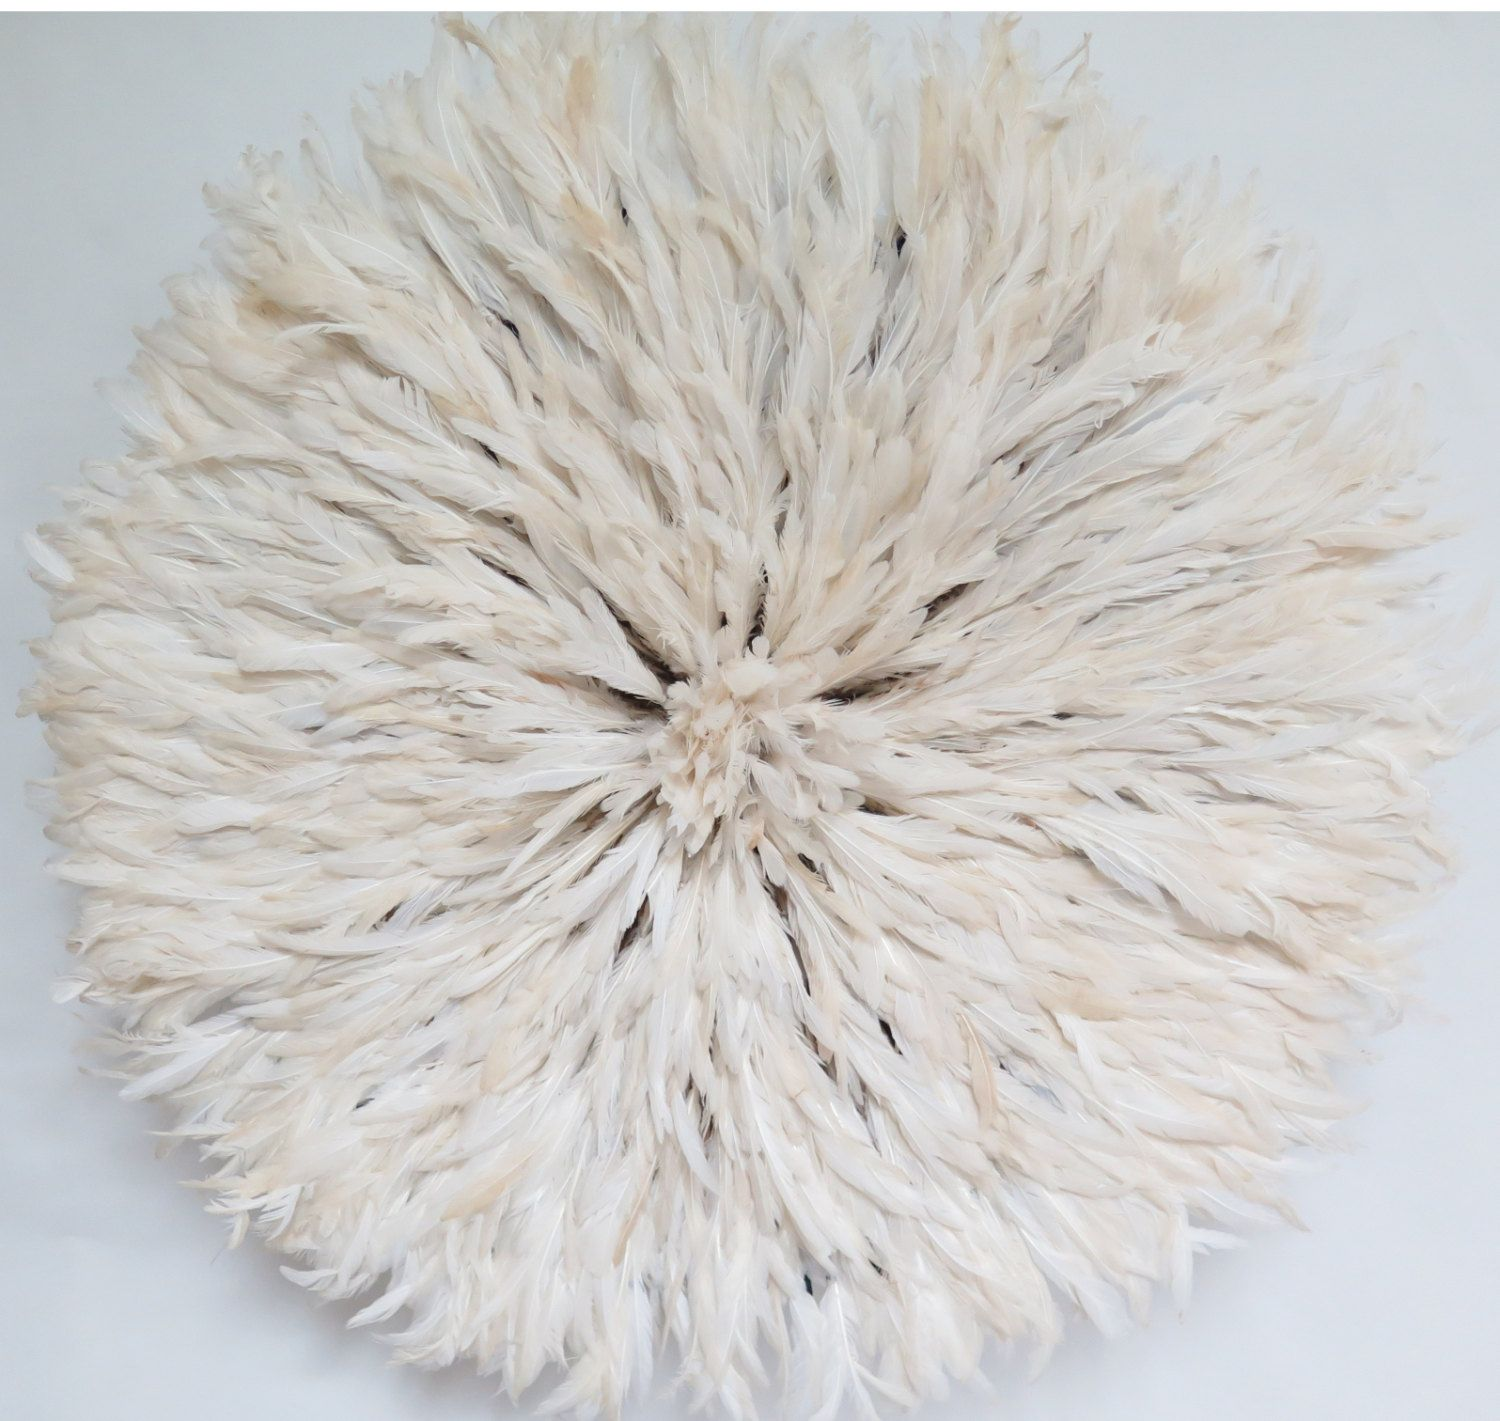 Authentic Juju Hat Wall Decor Feather Headdress By Oldworldpe On Etsy Https